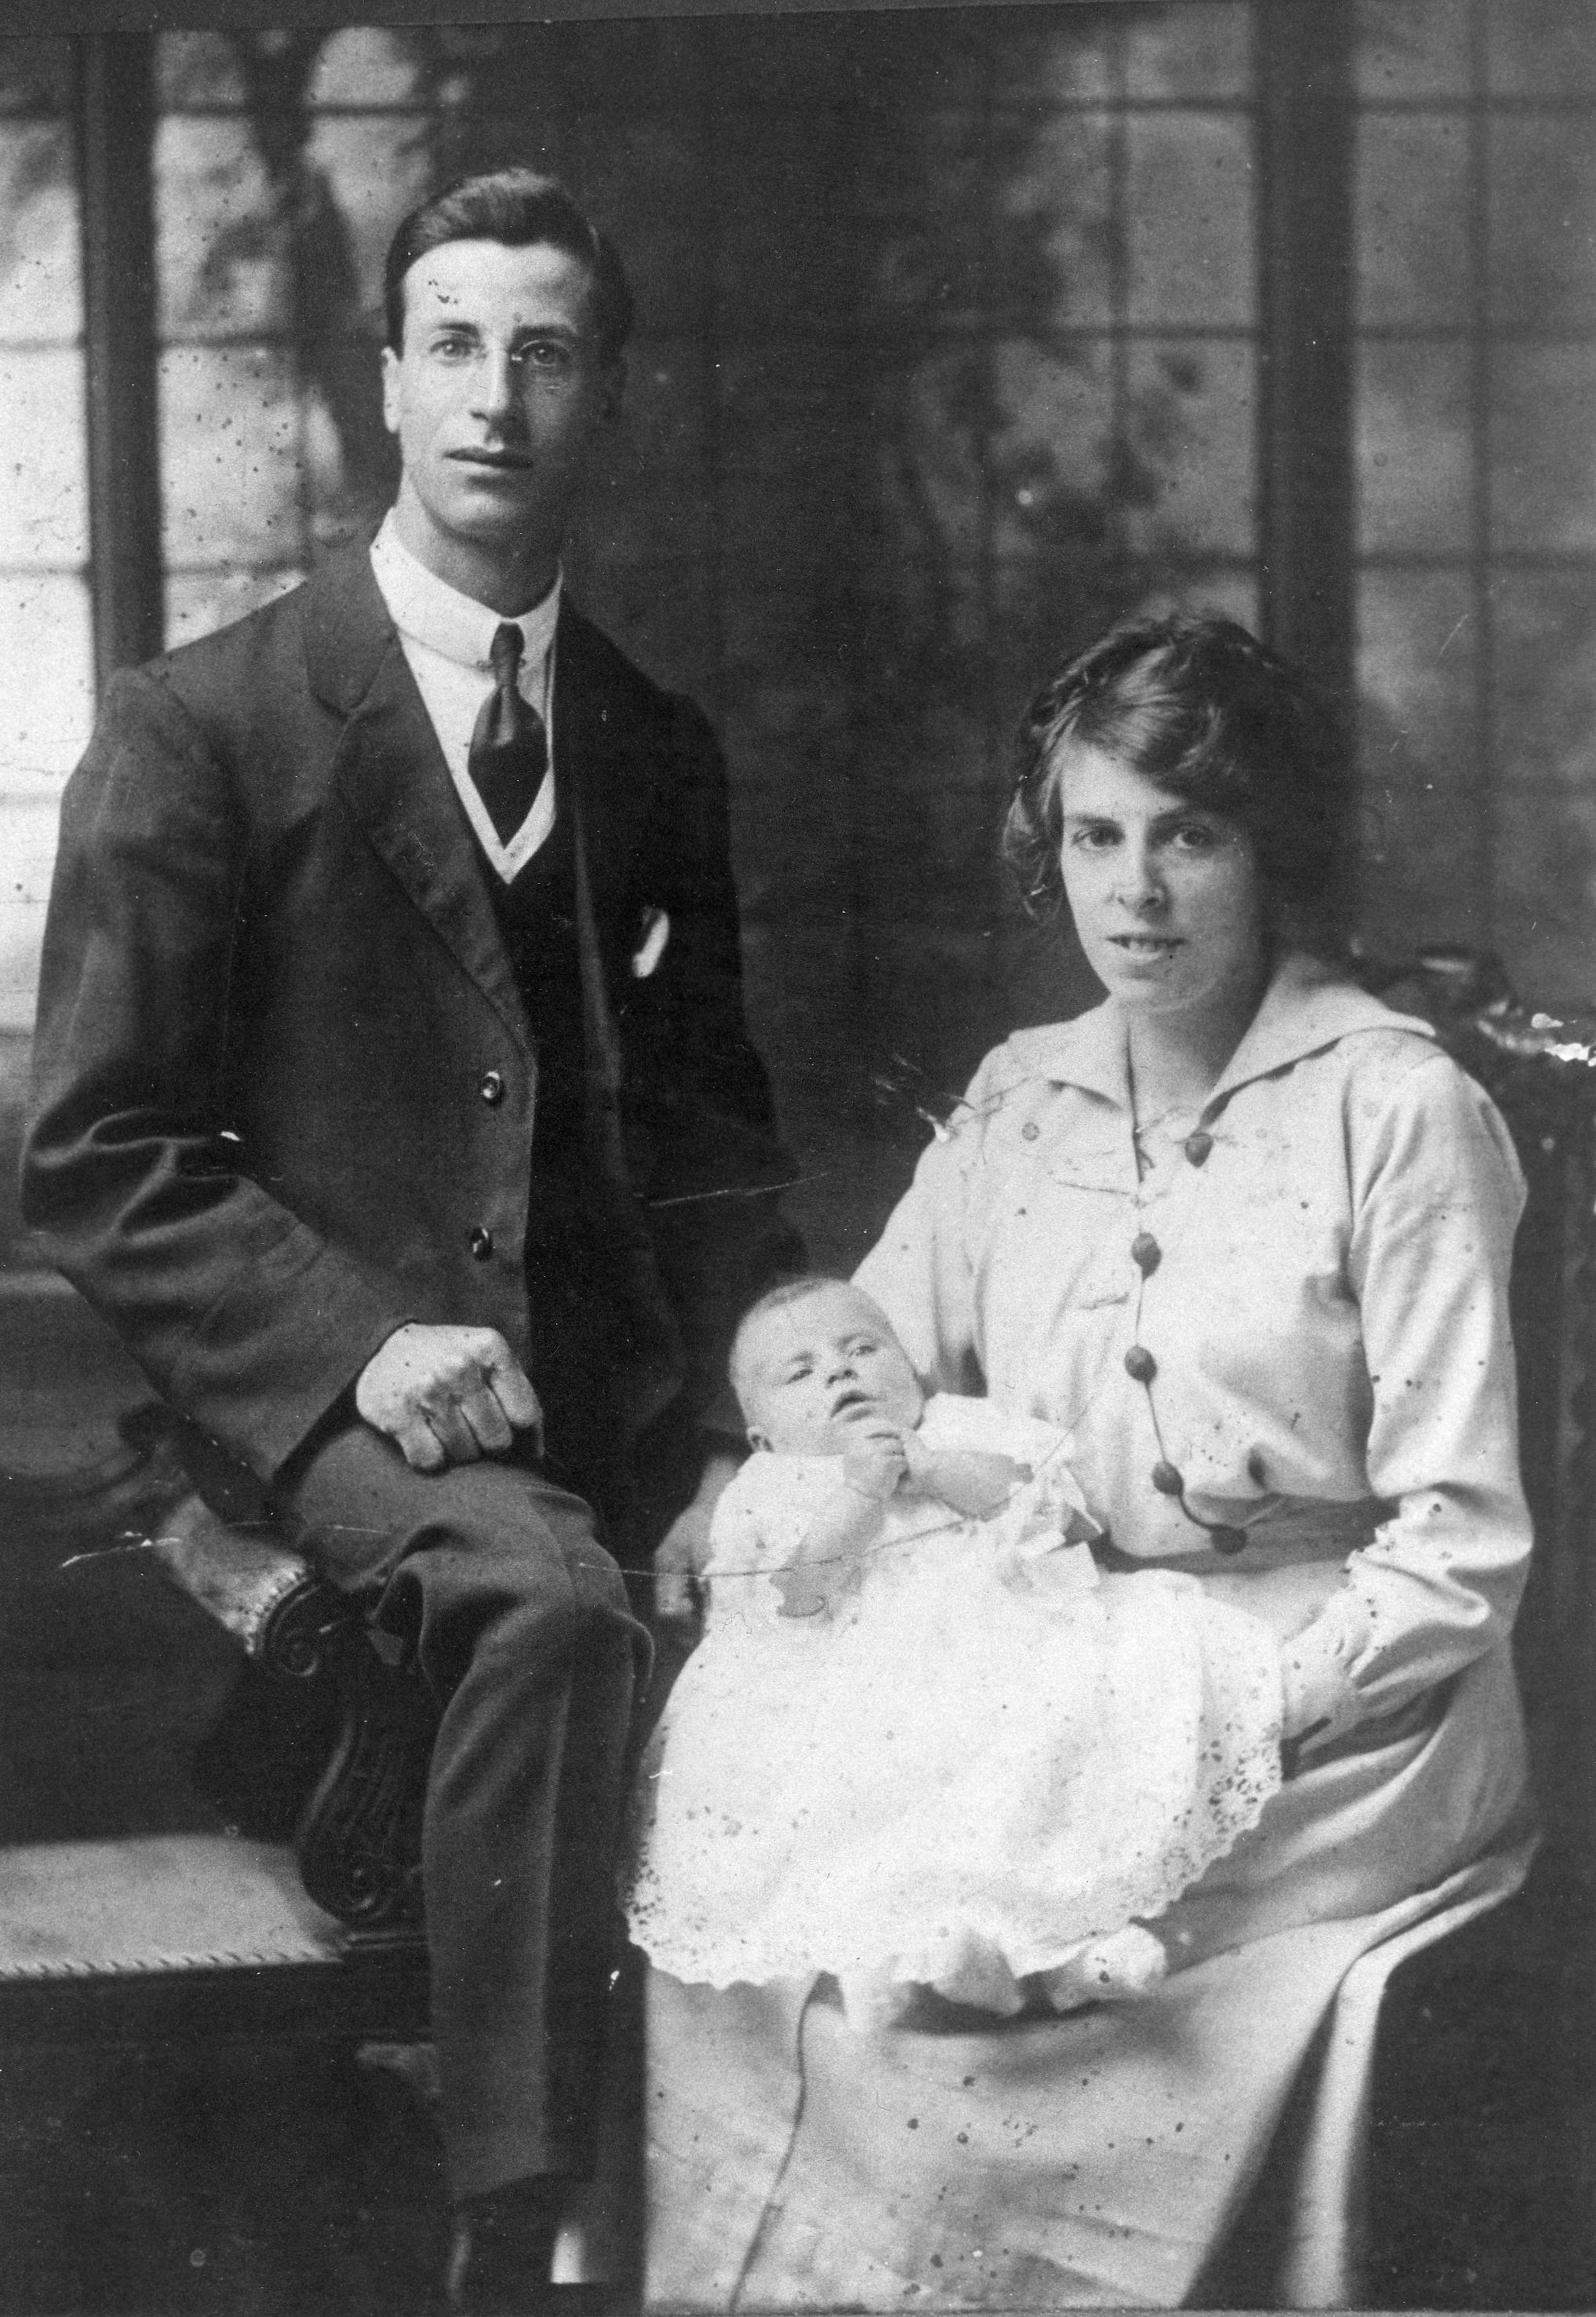 Charles Edward and Laura Anderson